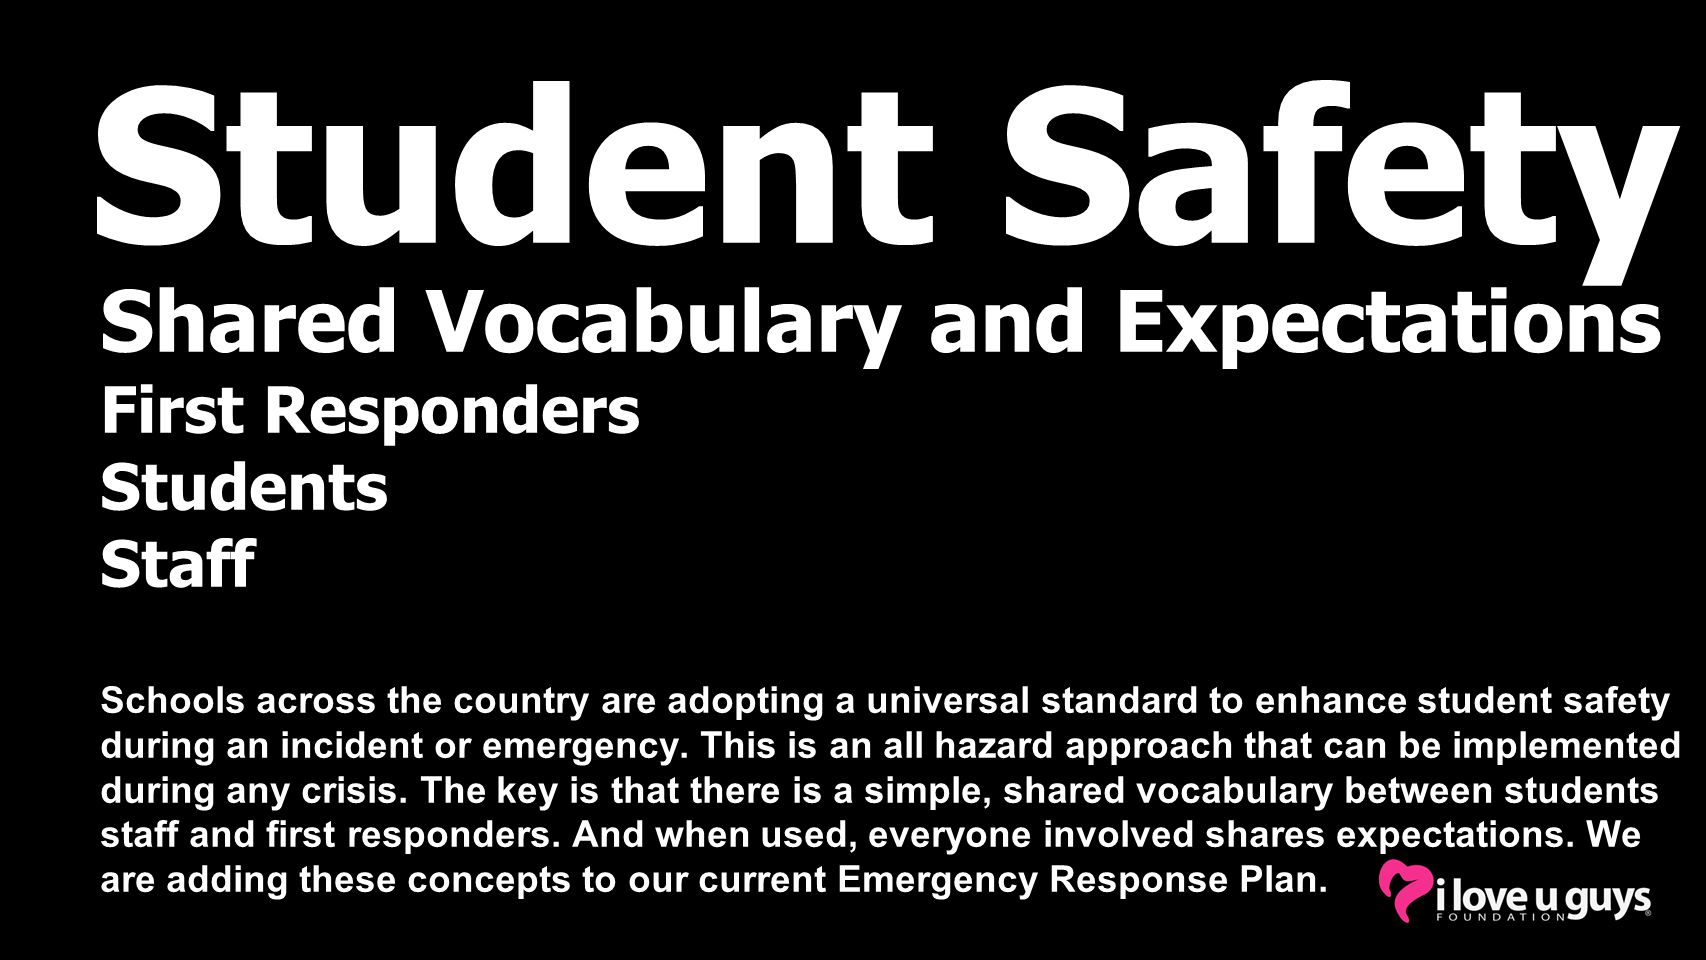 Student Safety Shared Vocabulary and Expectations First Responders